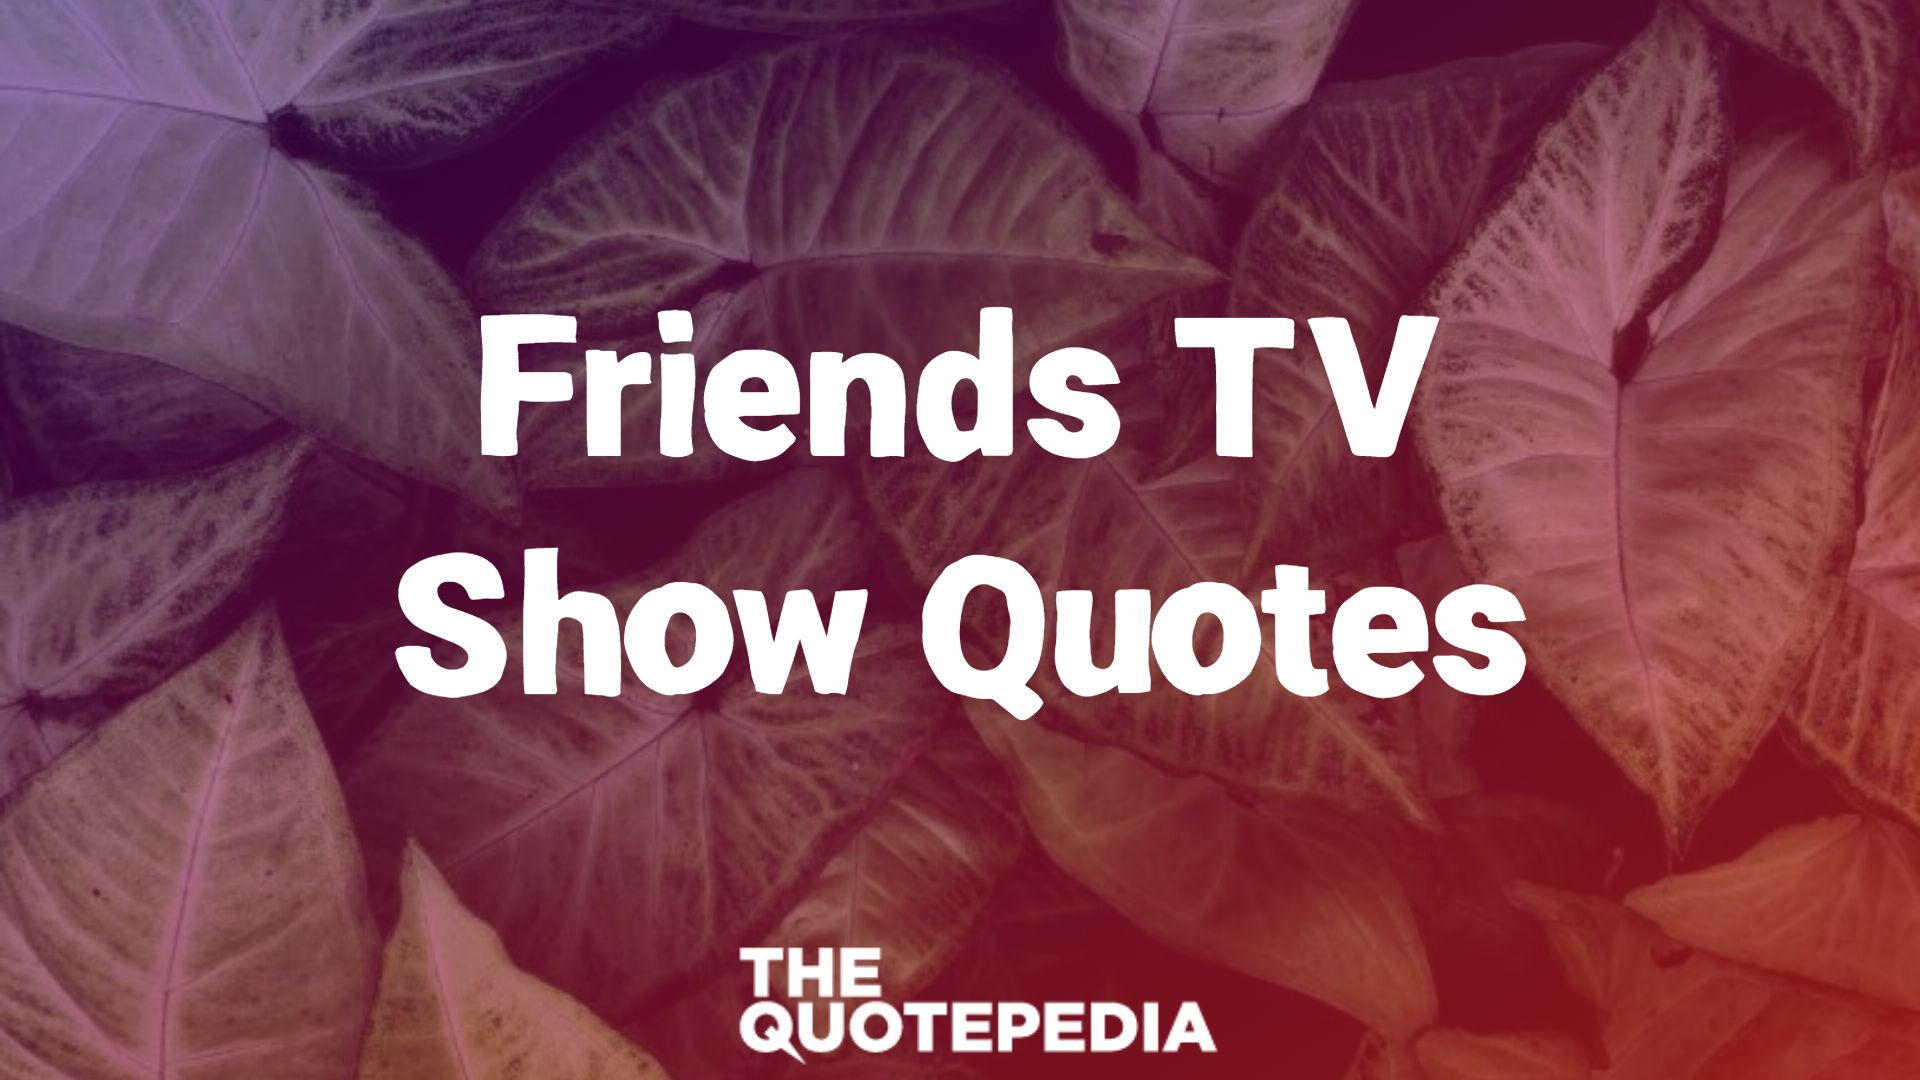 Friends TV Show Quotes